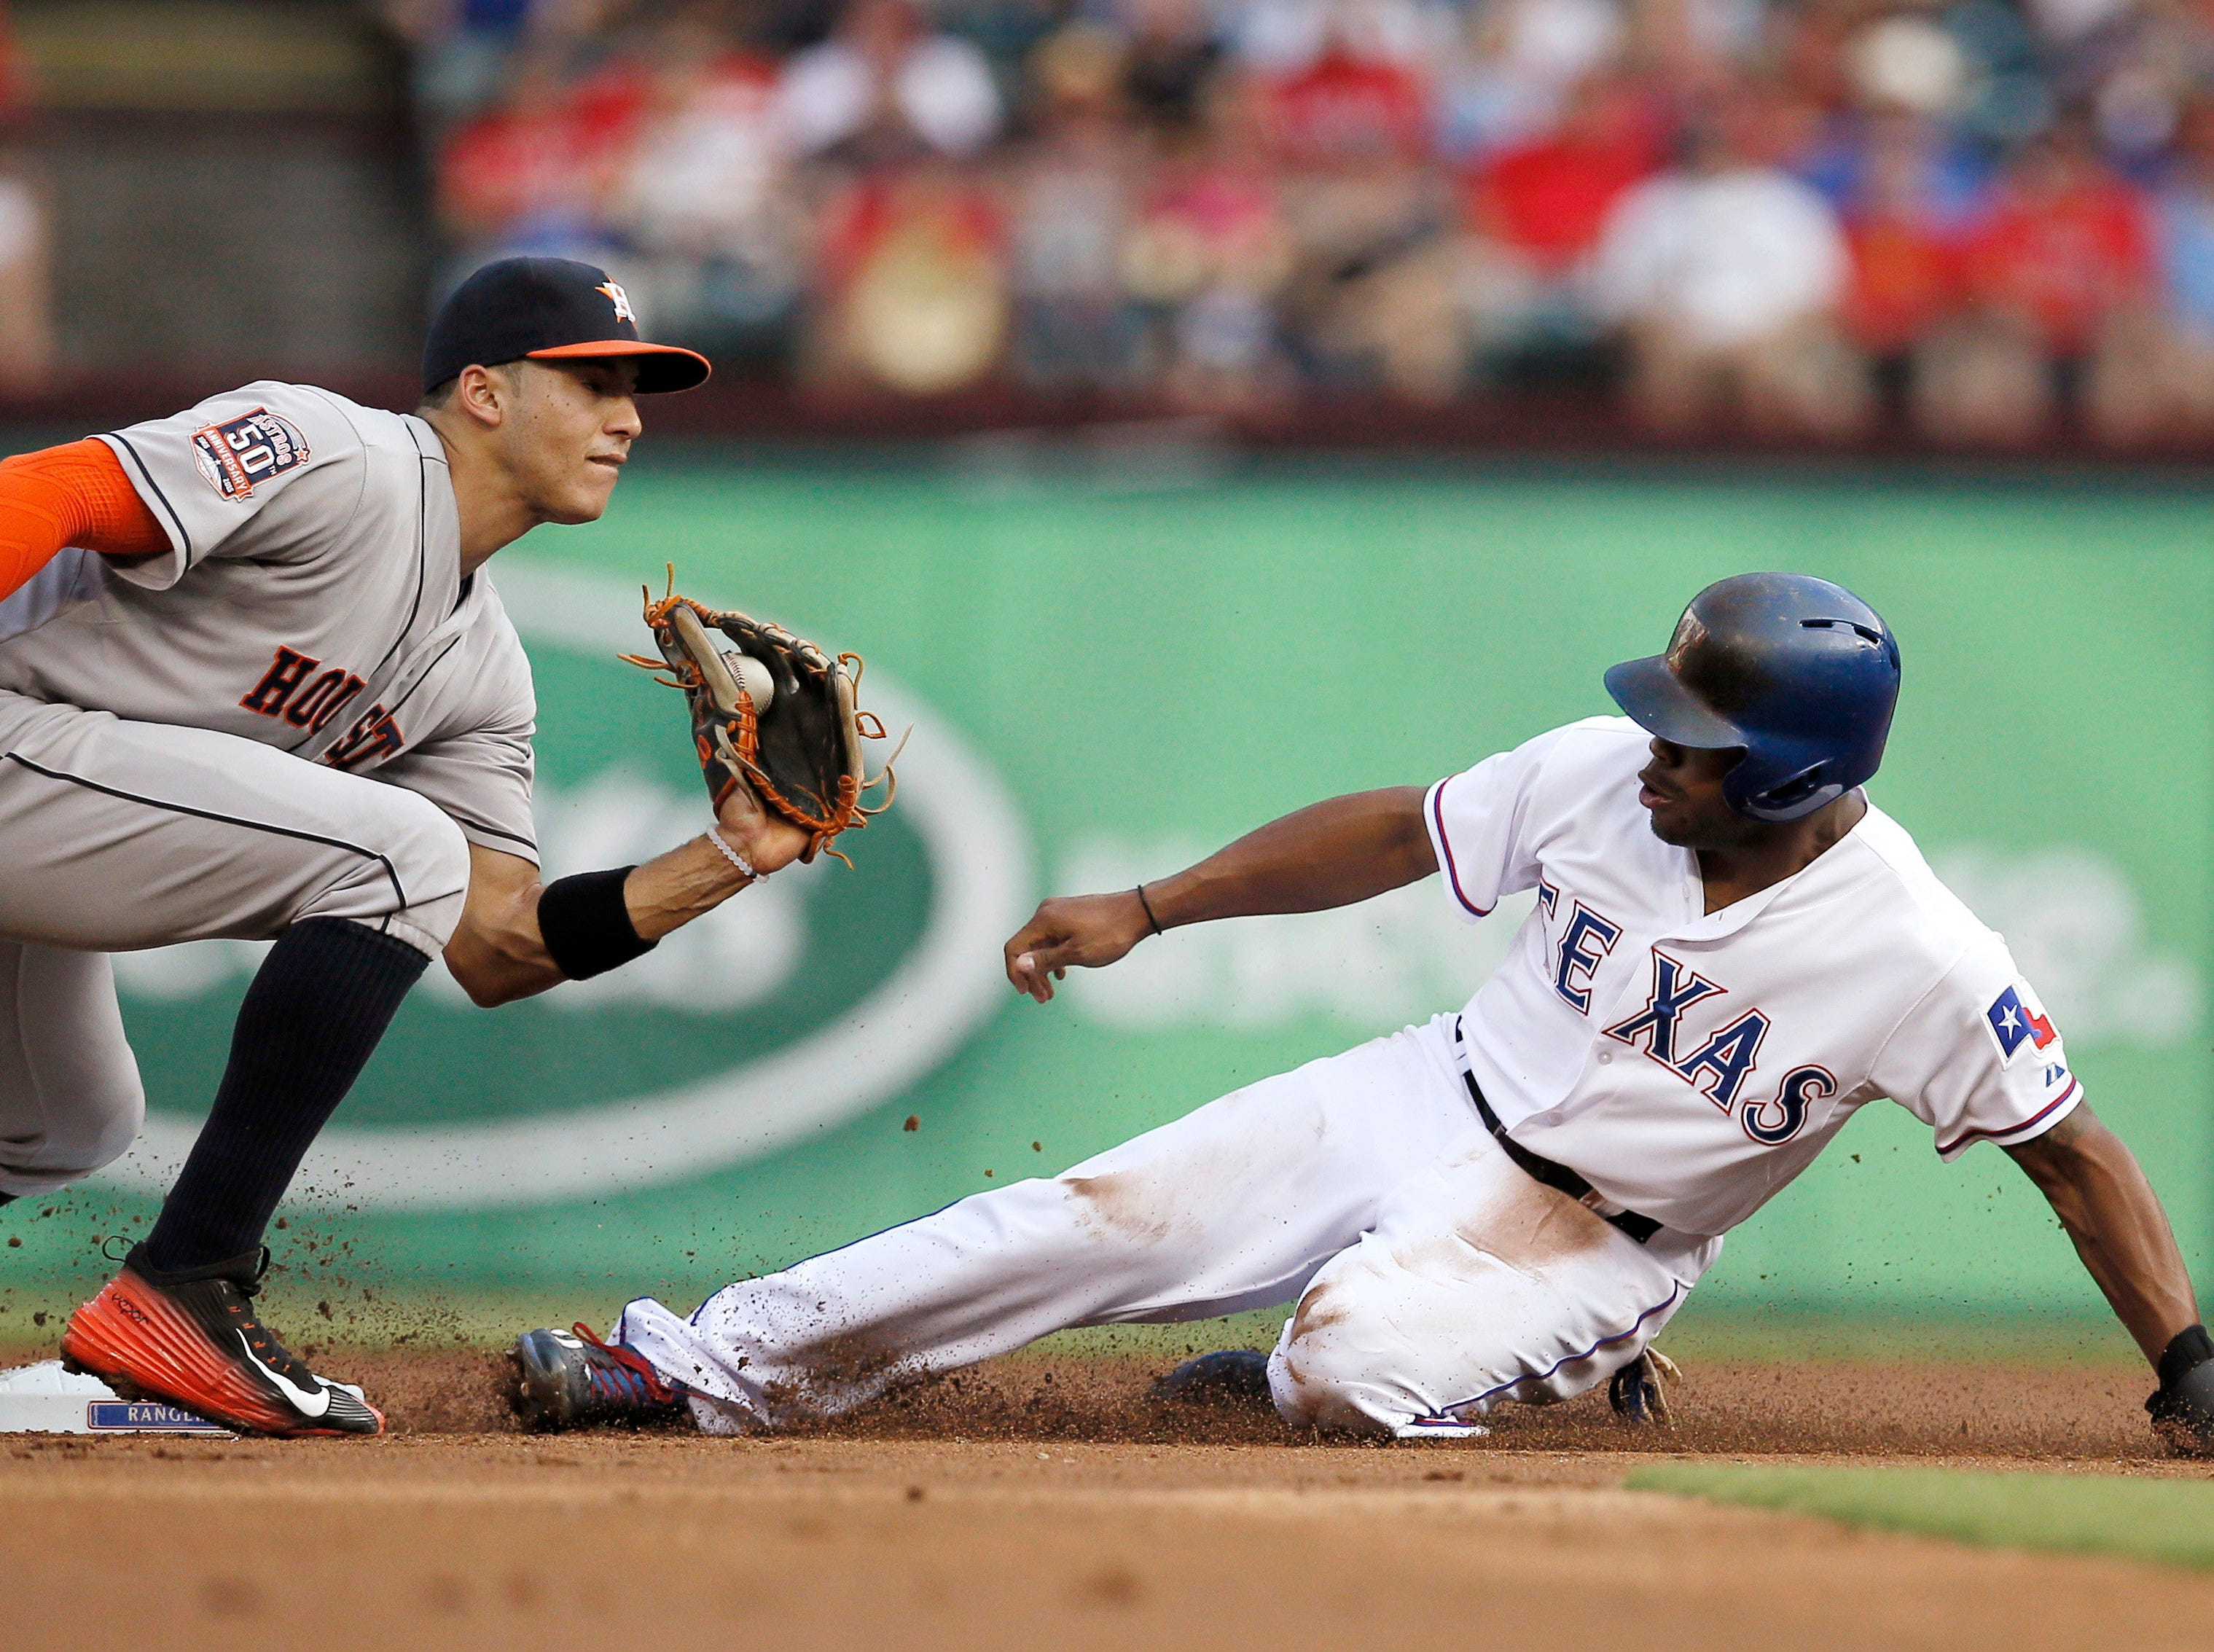 Houston Astros shortstop Carlos Correa is unable to tag Texas Rangers' Delino DeShields as DeShields steals second in the first inning of a baseball game Tuesday, Aug. 4, 2015, in Arlington, Texas. (AP Photo/Tony Gutierrez)